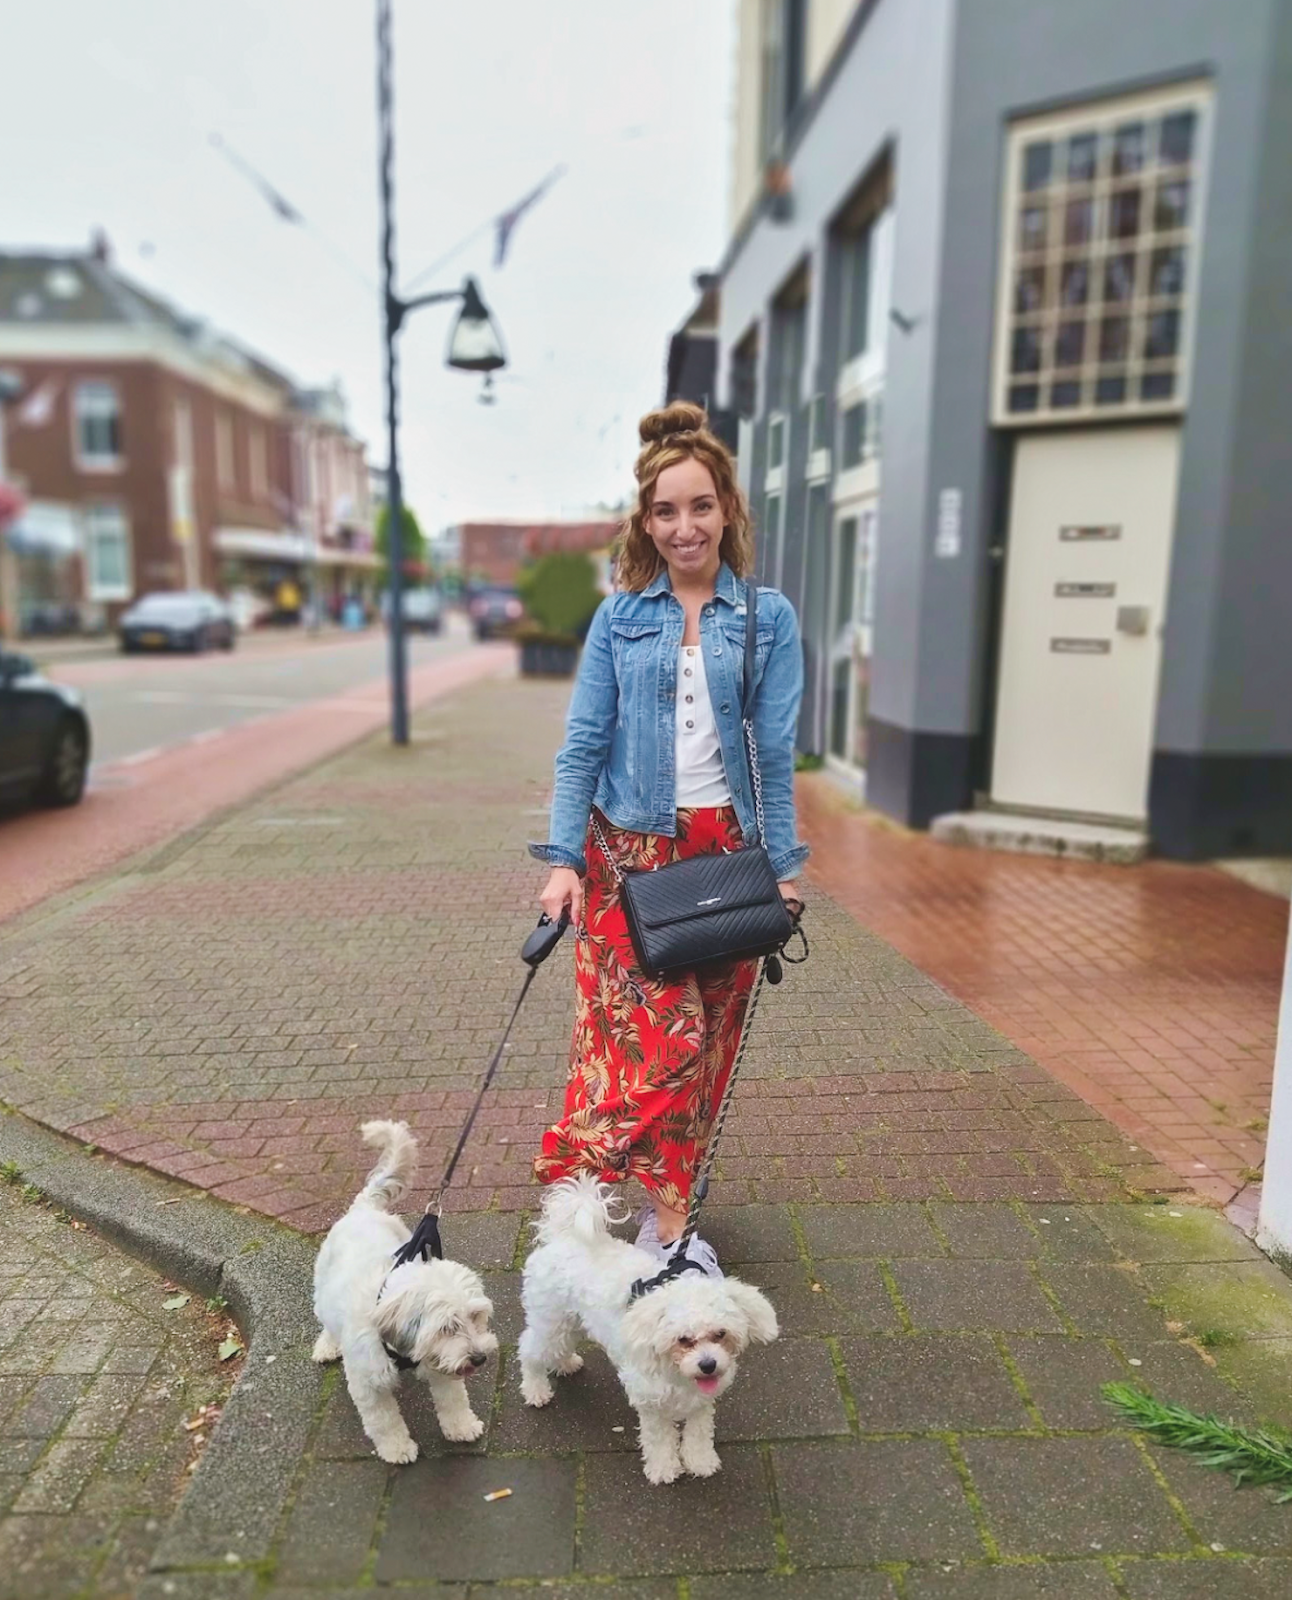 ootd outfit of the day style fashionblogger malu swartjes bles magazine